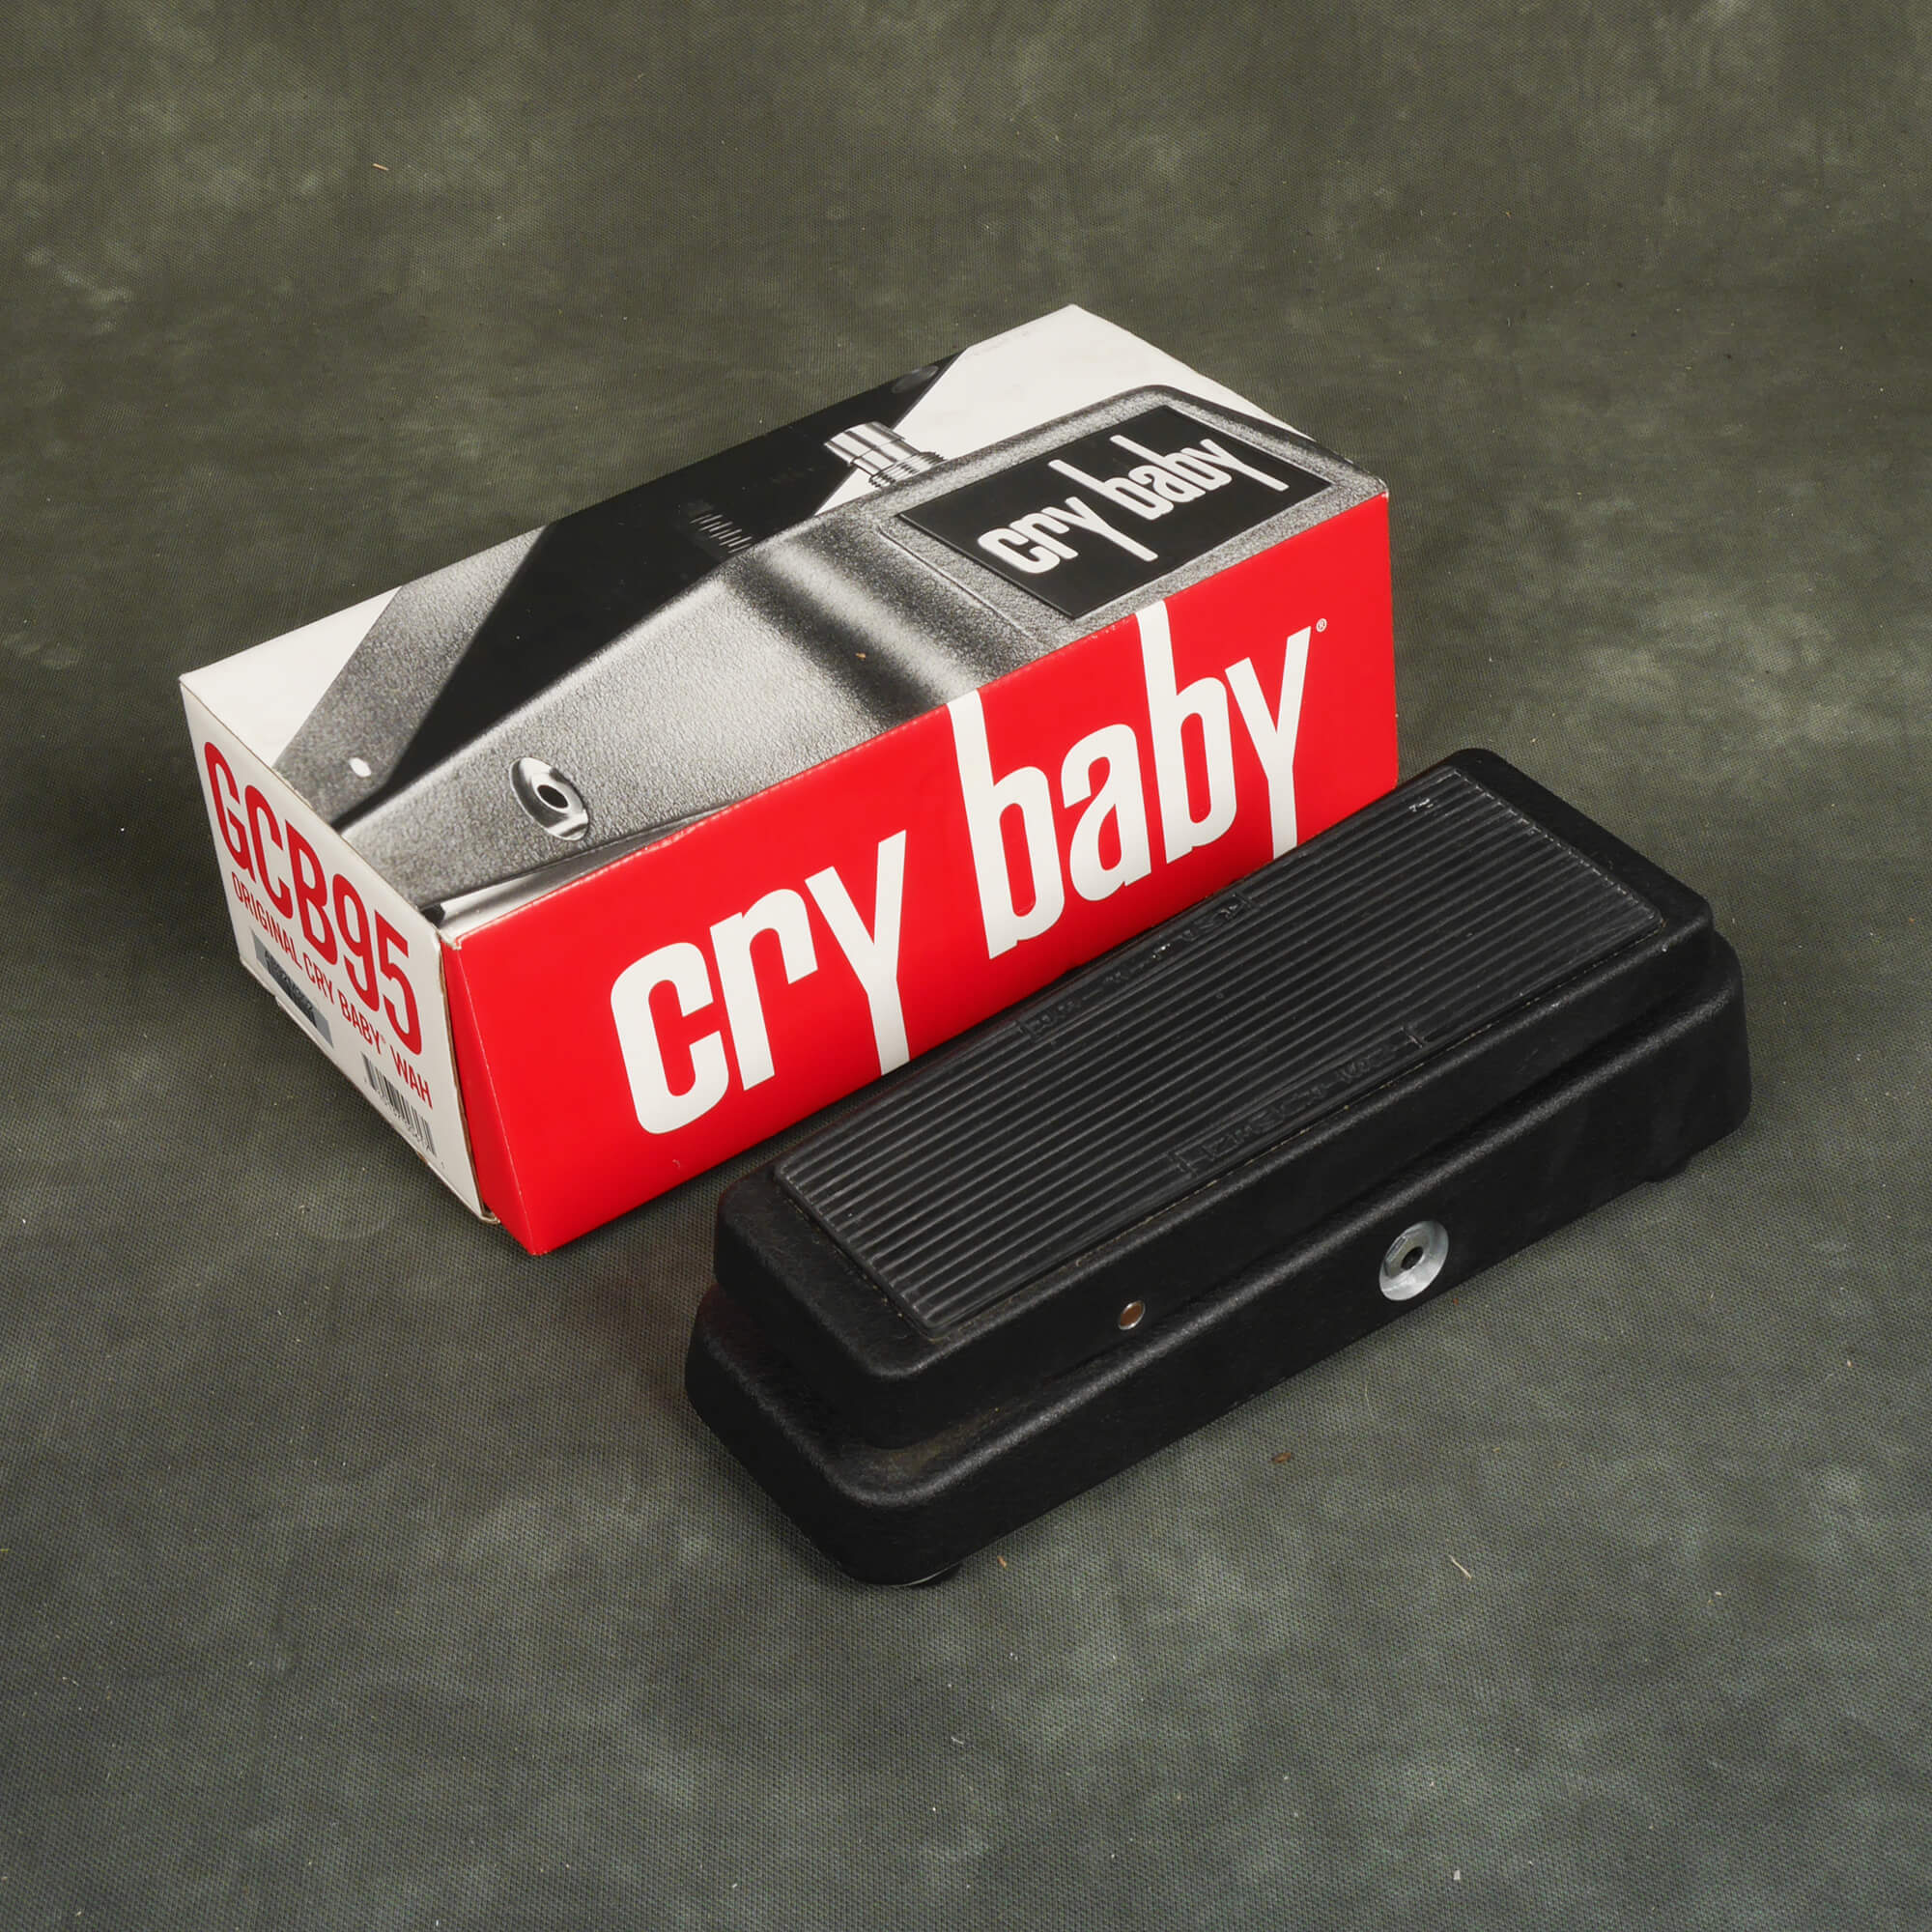 Jim Dunlop Cry Baby Wah FX Pedal w/Box - 2nd Hand